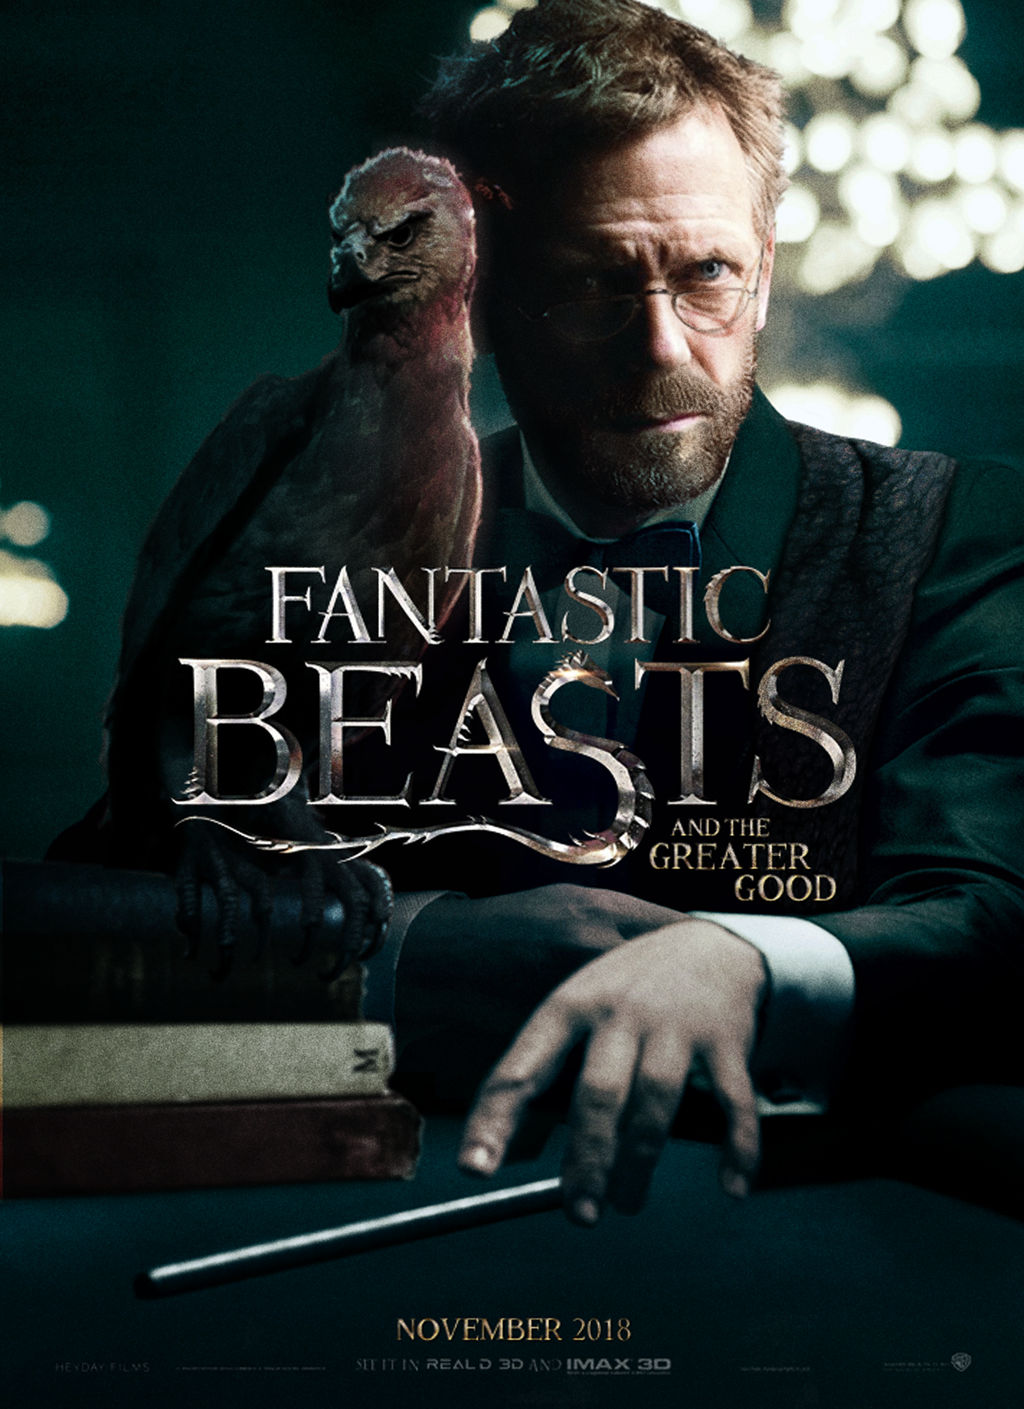 Fantastic Beasts and the Greater Good